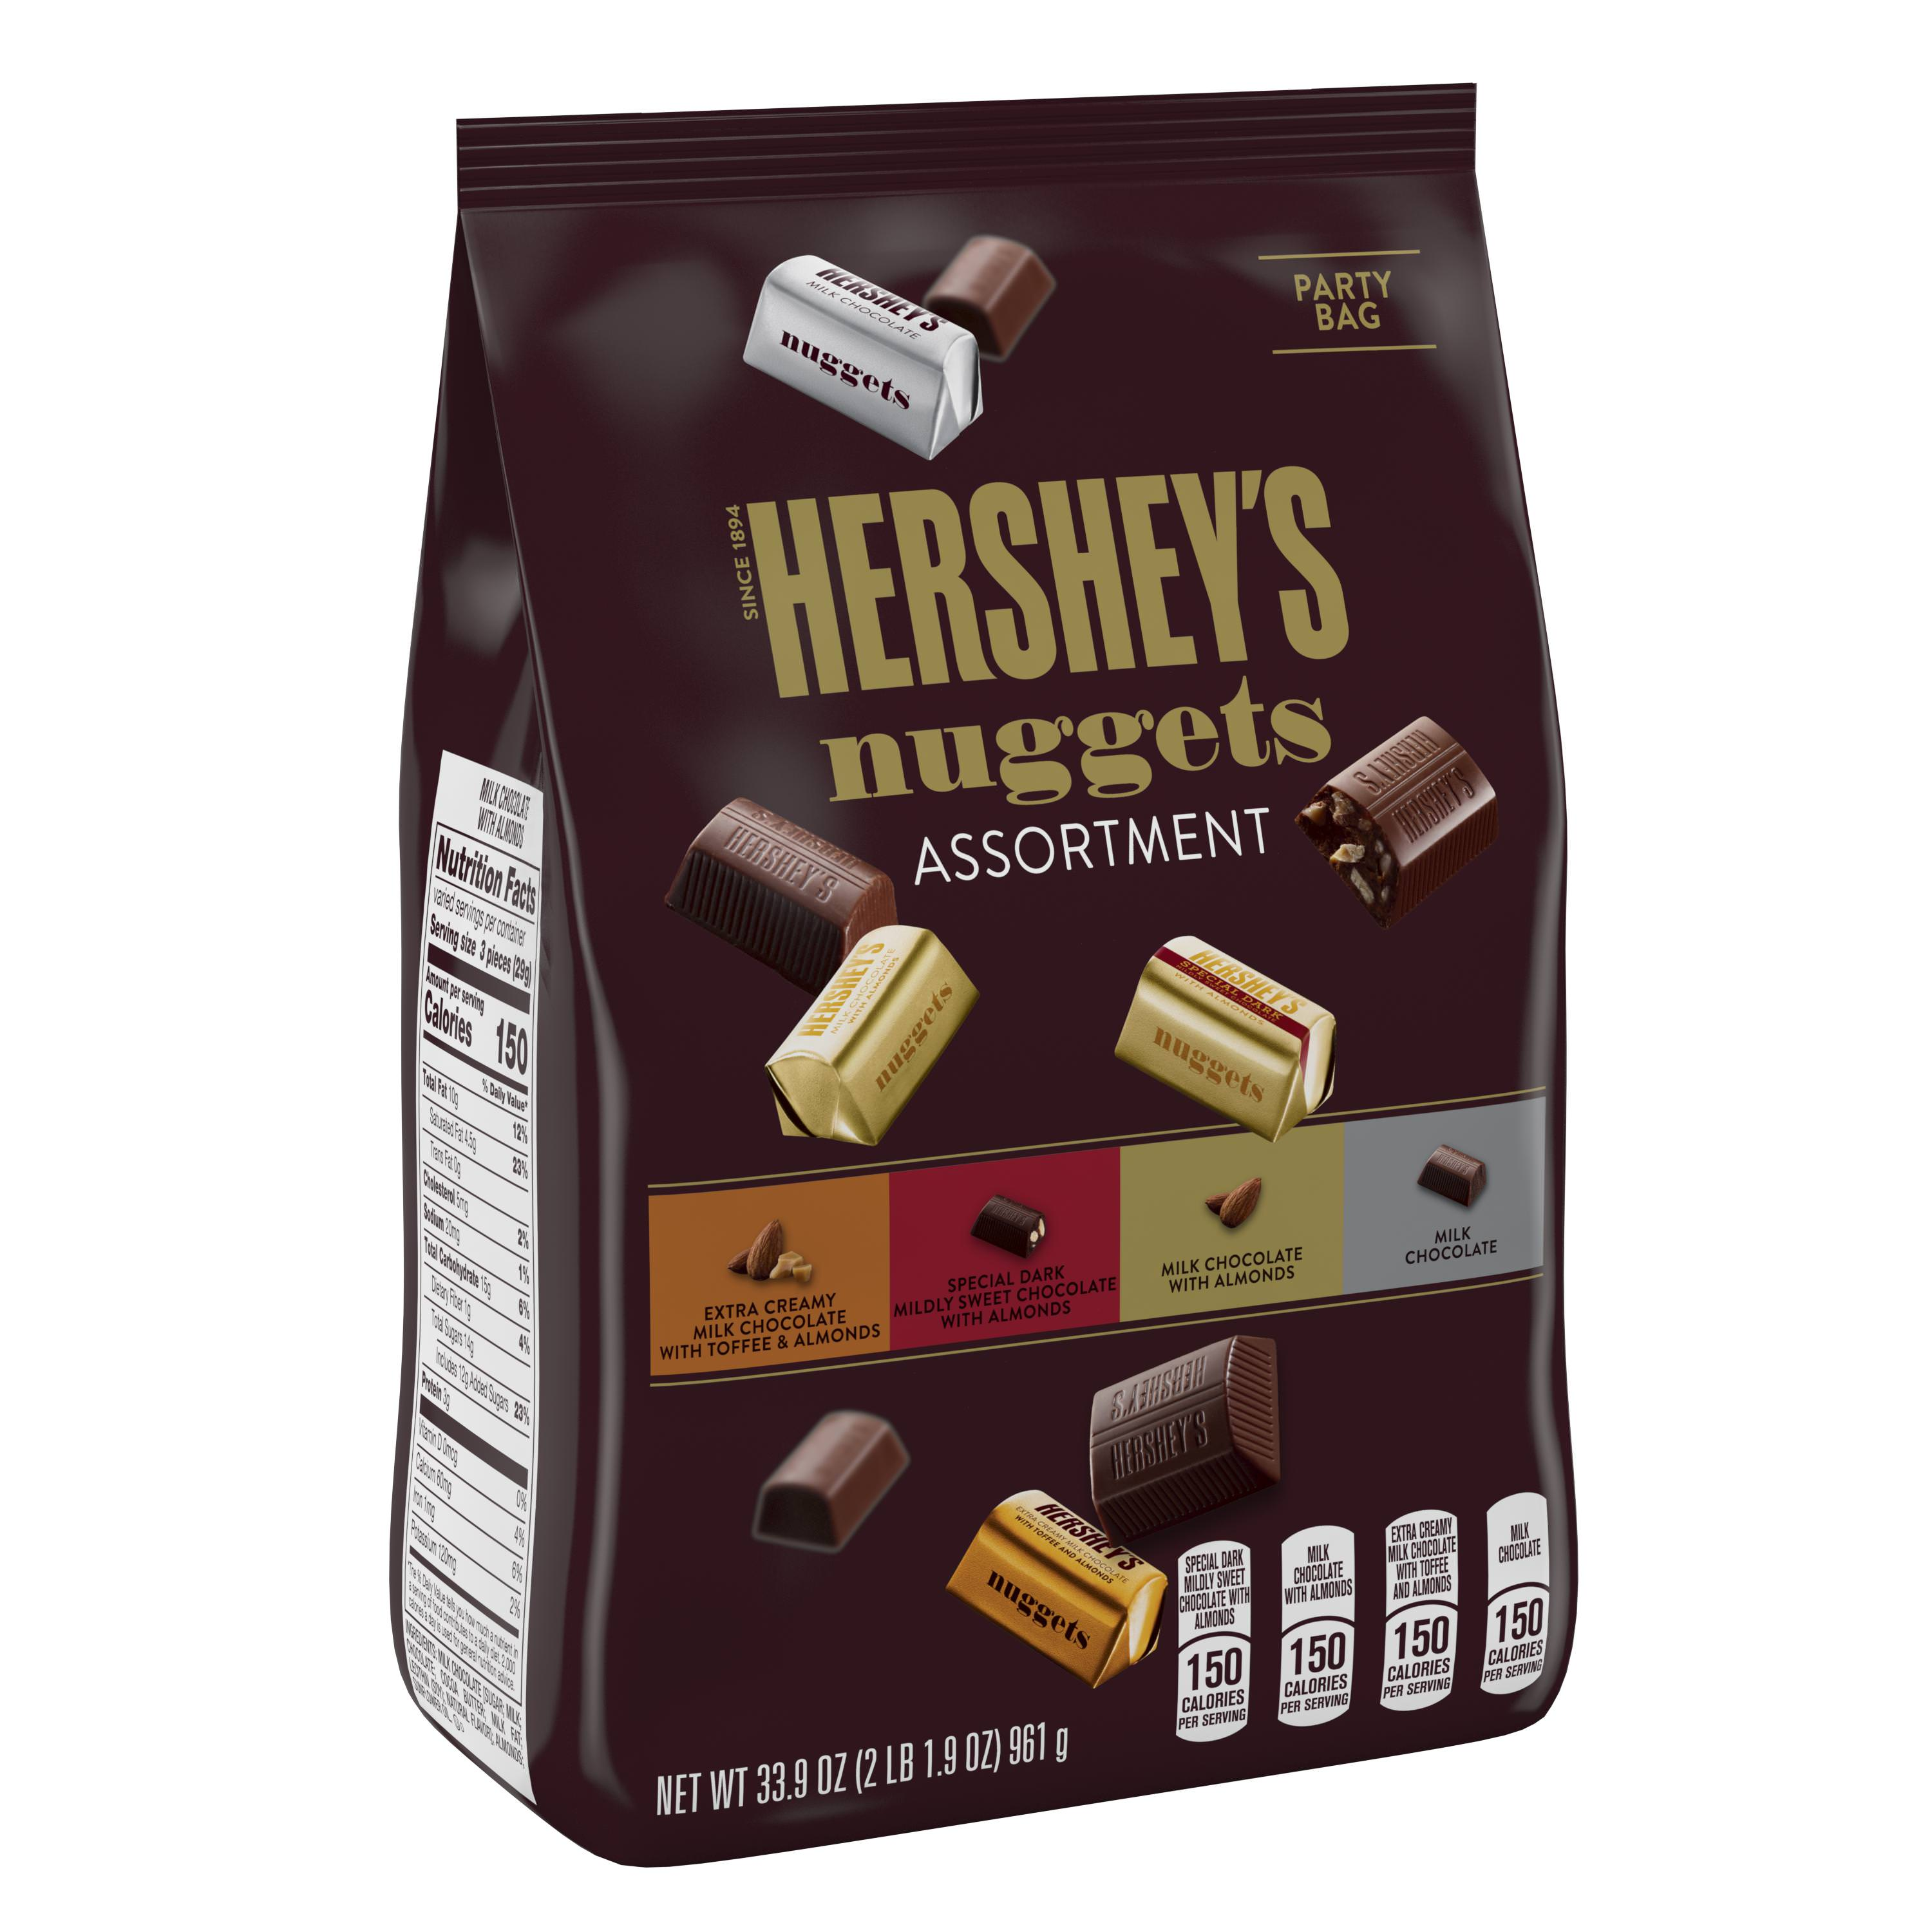 Hershey's Nuggets, Chocolate Candy Assortment, 33.9 Oz